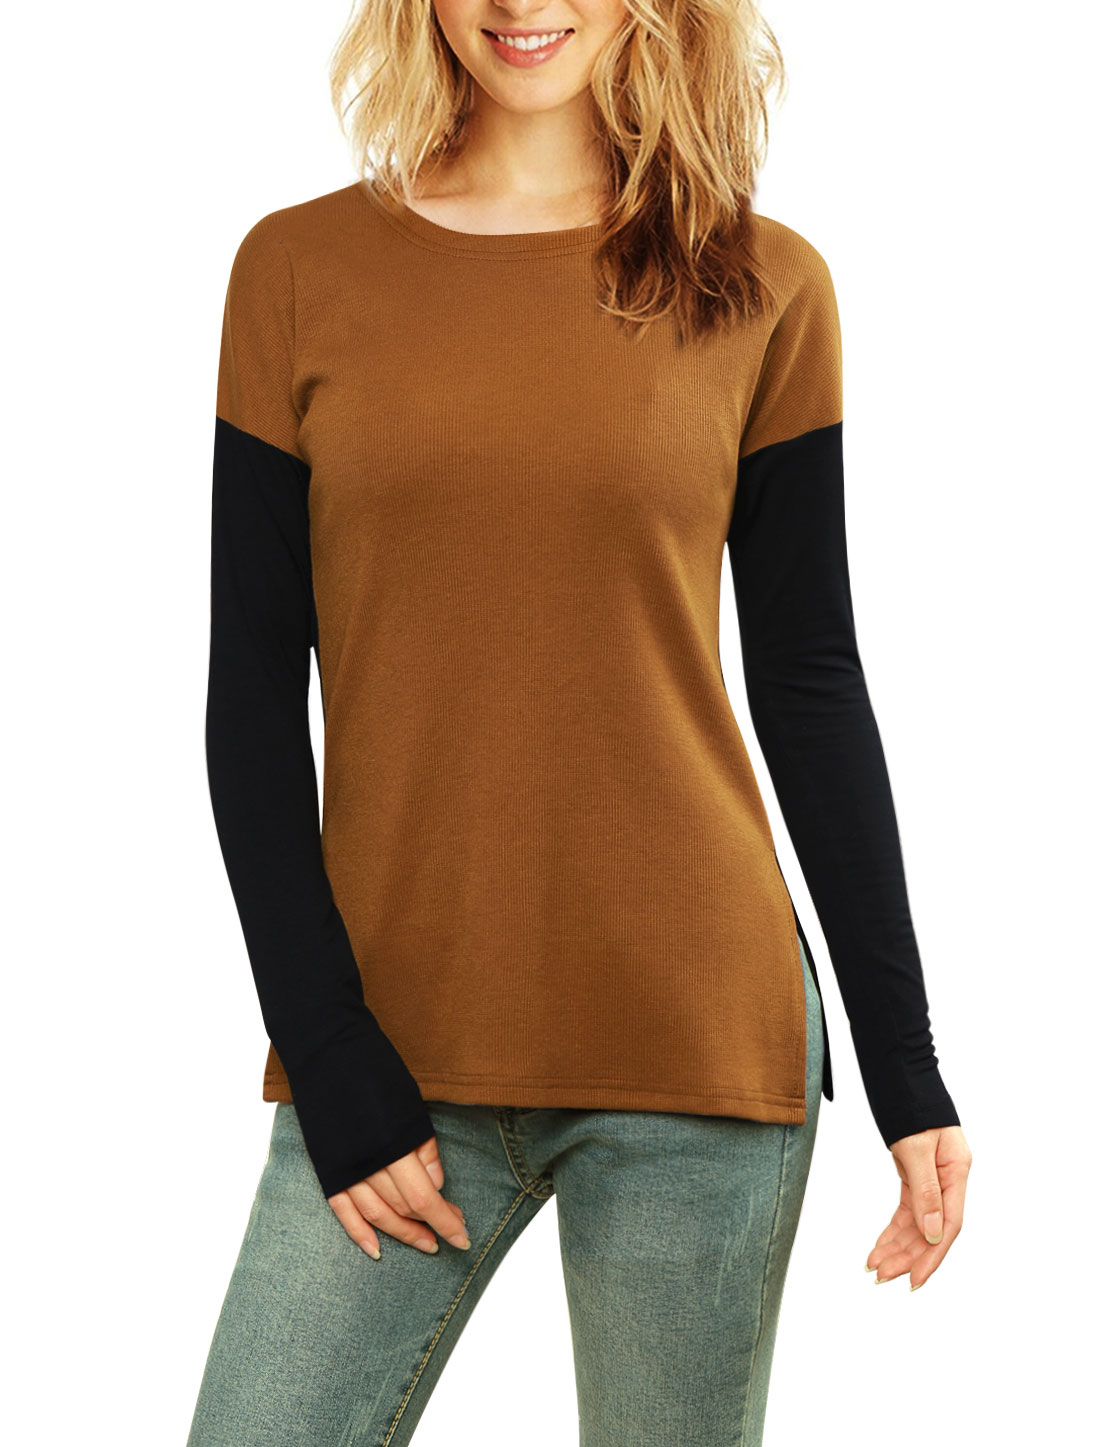 Women Color Block Side-Slit Paneled Slim Fit Ribbed Top Brown L